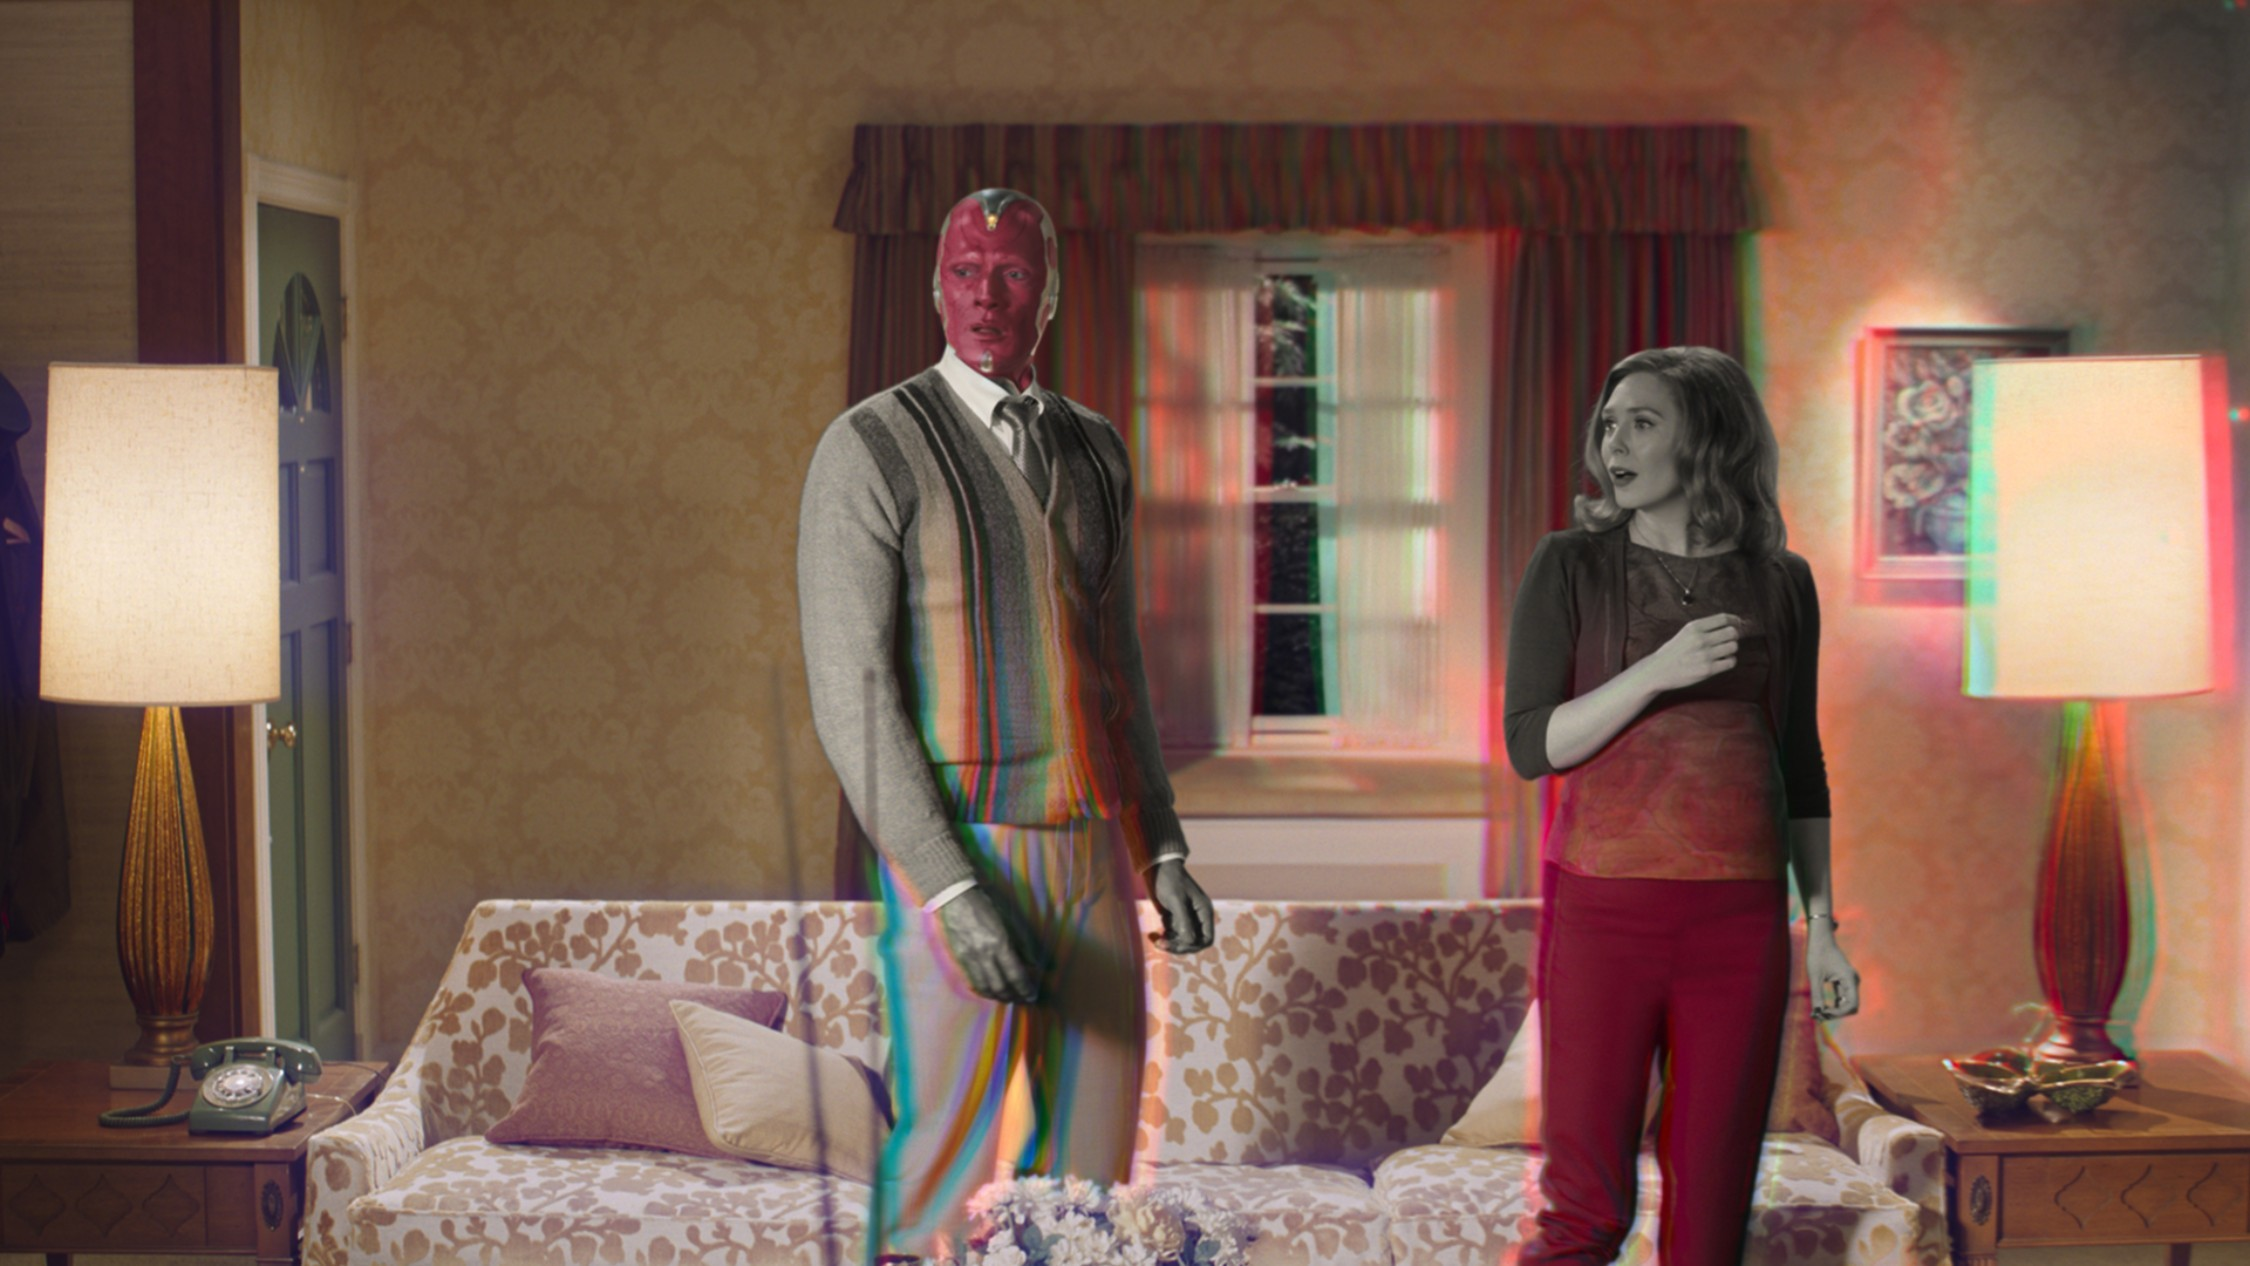 Elizabeth Olsen's Scarlet Witch and Paul Bettany's Vision